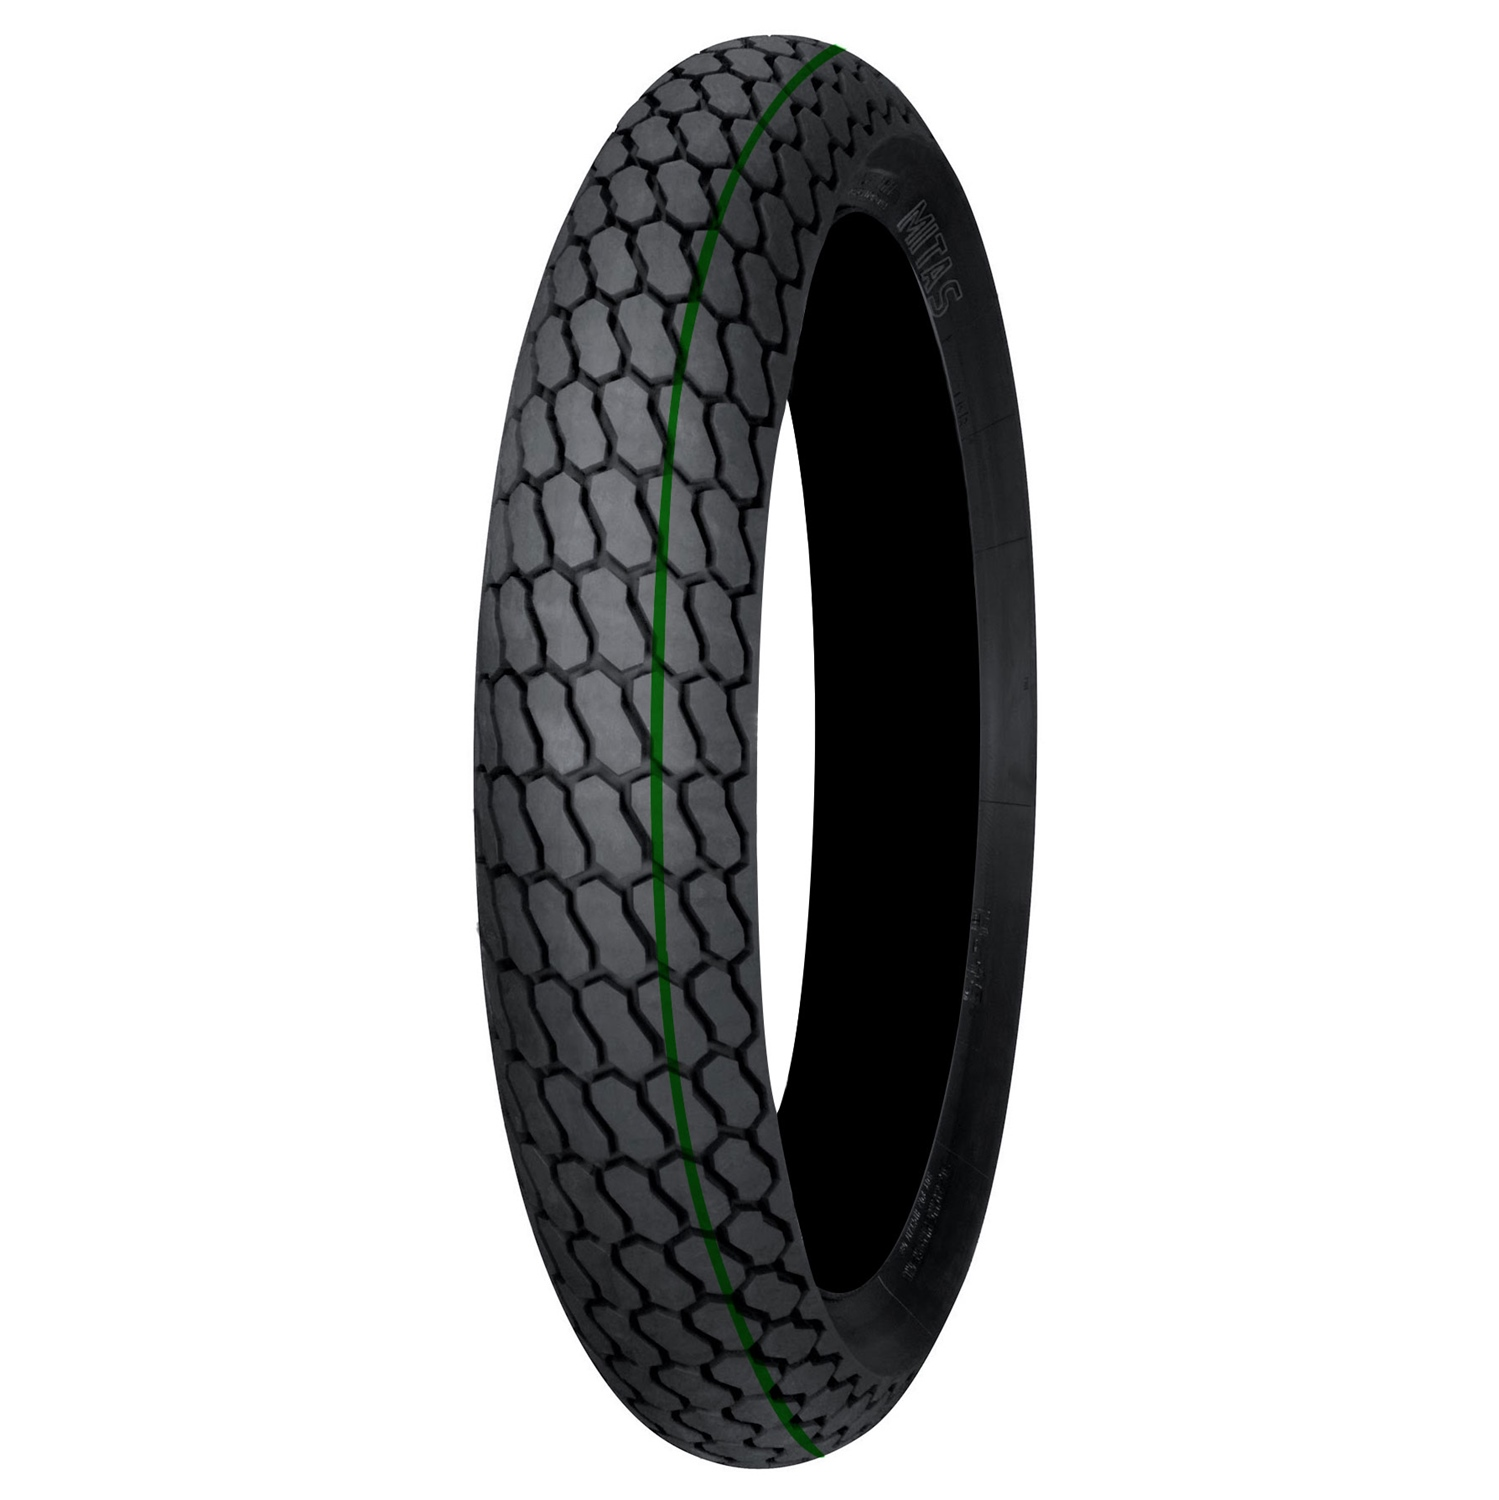 MITAS FLAT TRACK GREEN STRIPE NHS TUBED FRONT TIRE 130/80-19 27.0 x 7.0-19